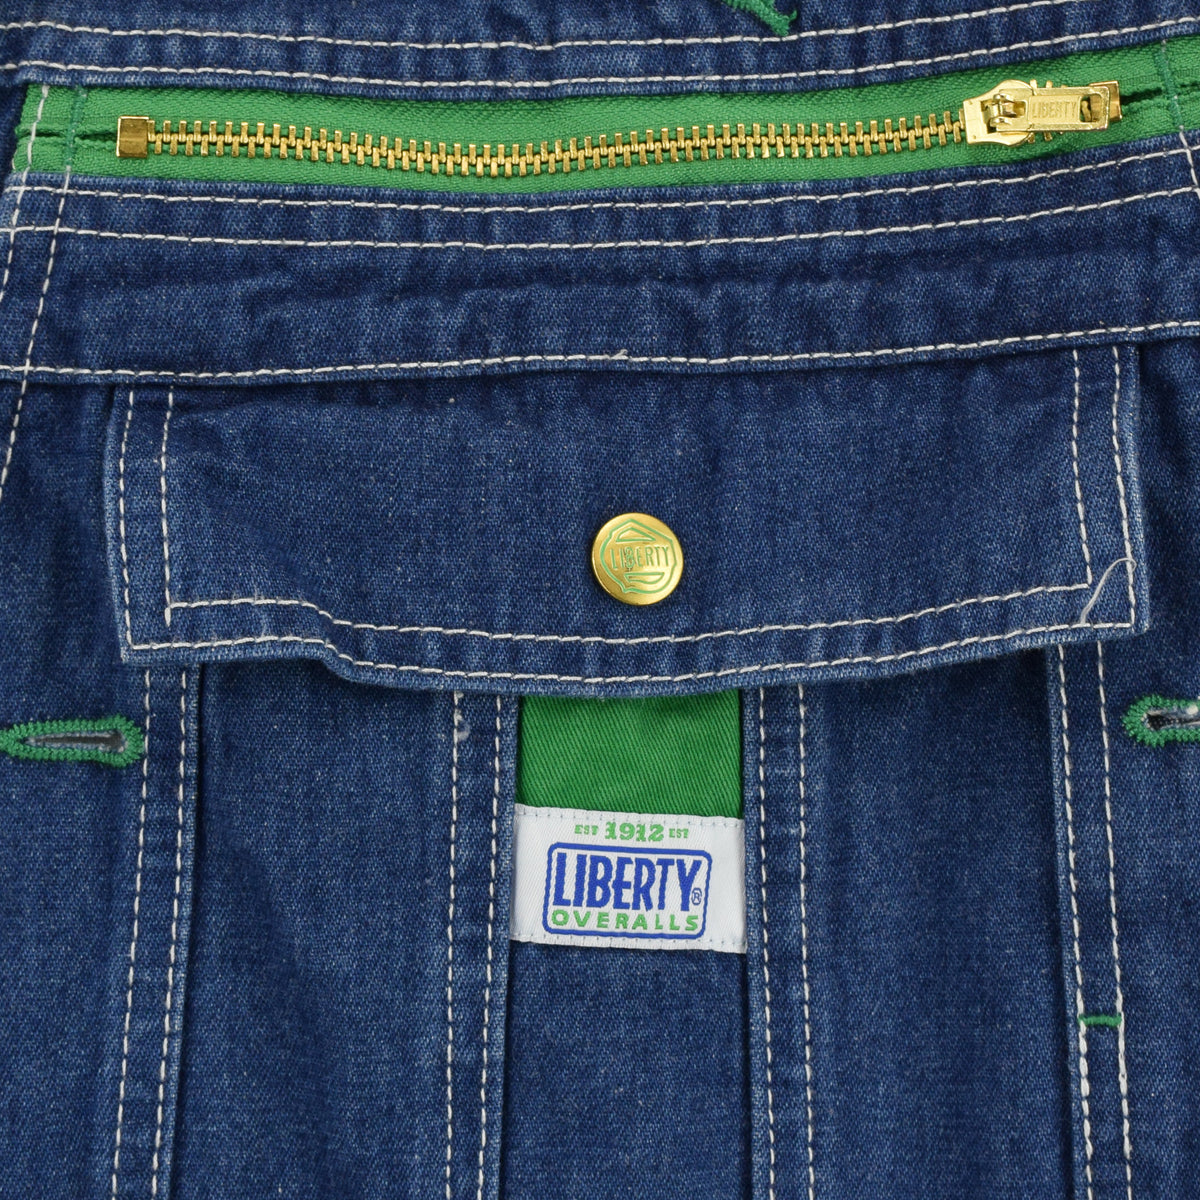 Vintage Liberty Denim Work Dungarees Blue Bib Overalls Trousers M / L 32-34 W chest pocket